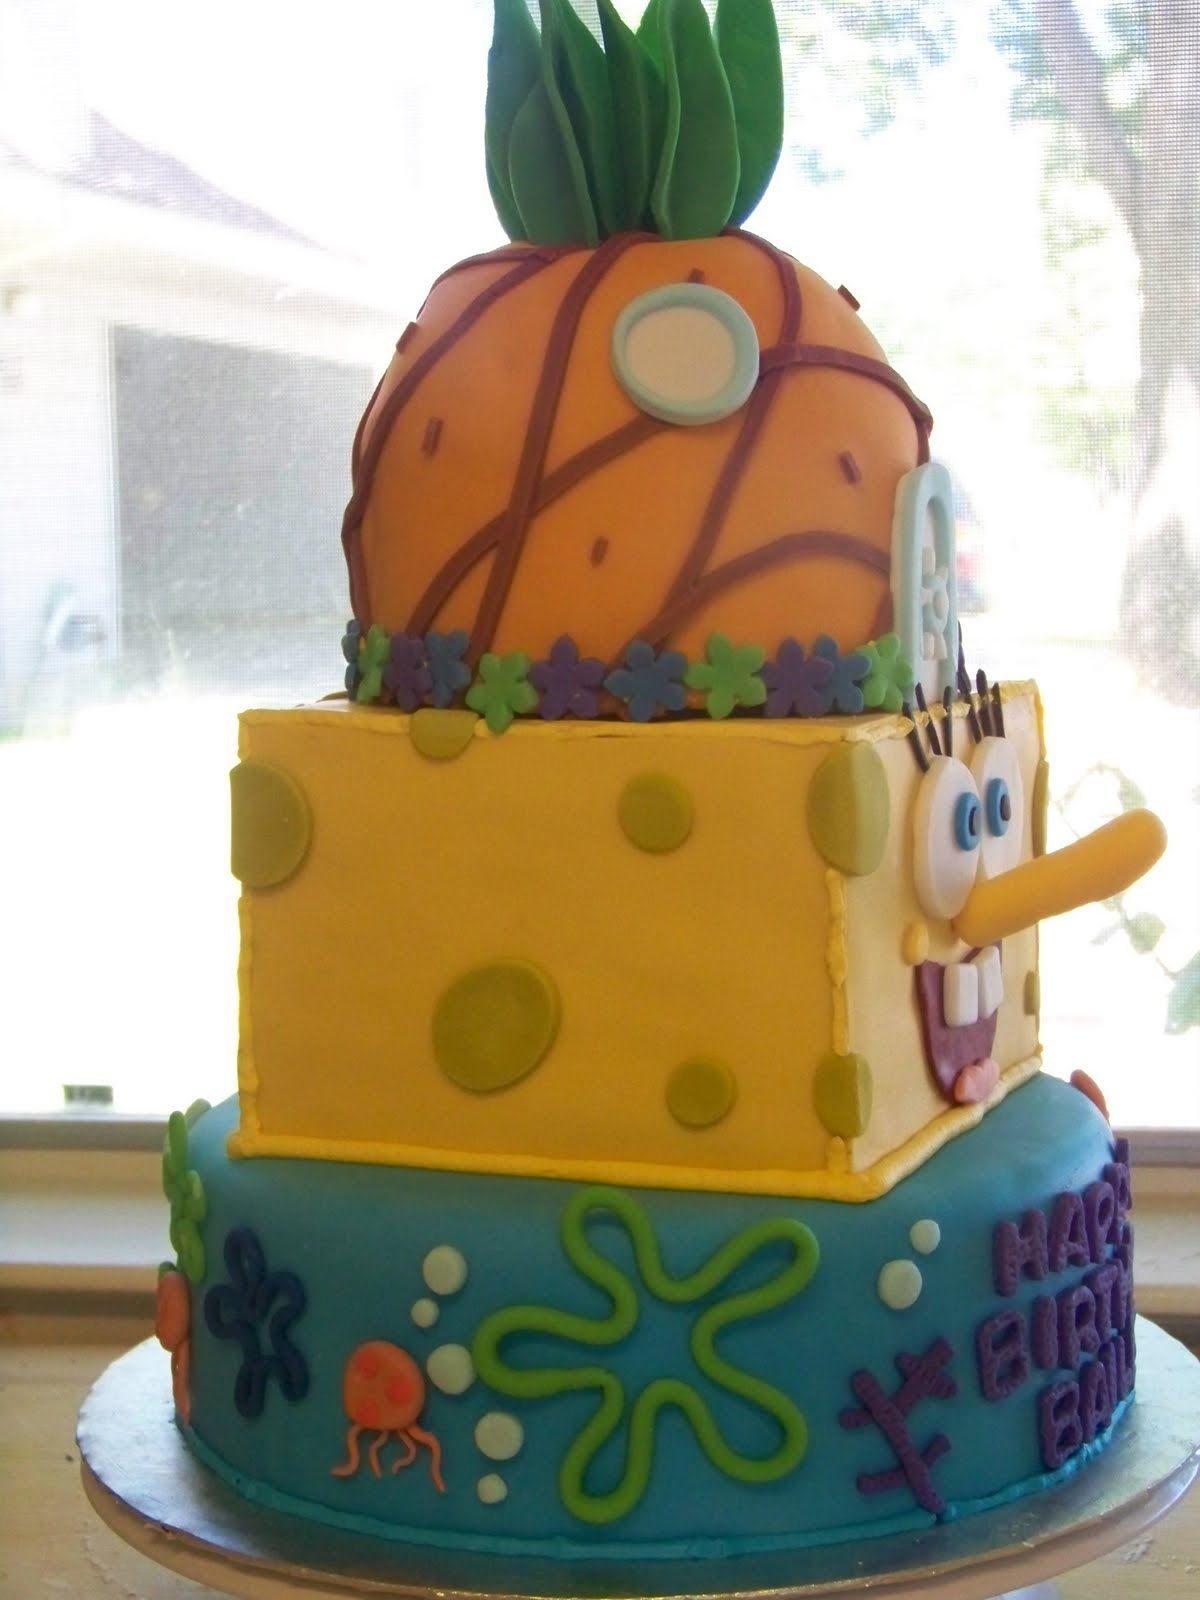 Spongebob Squarepants St Birthday Cake